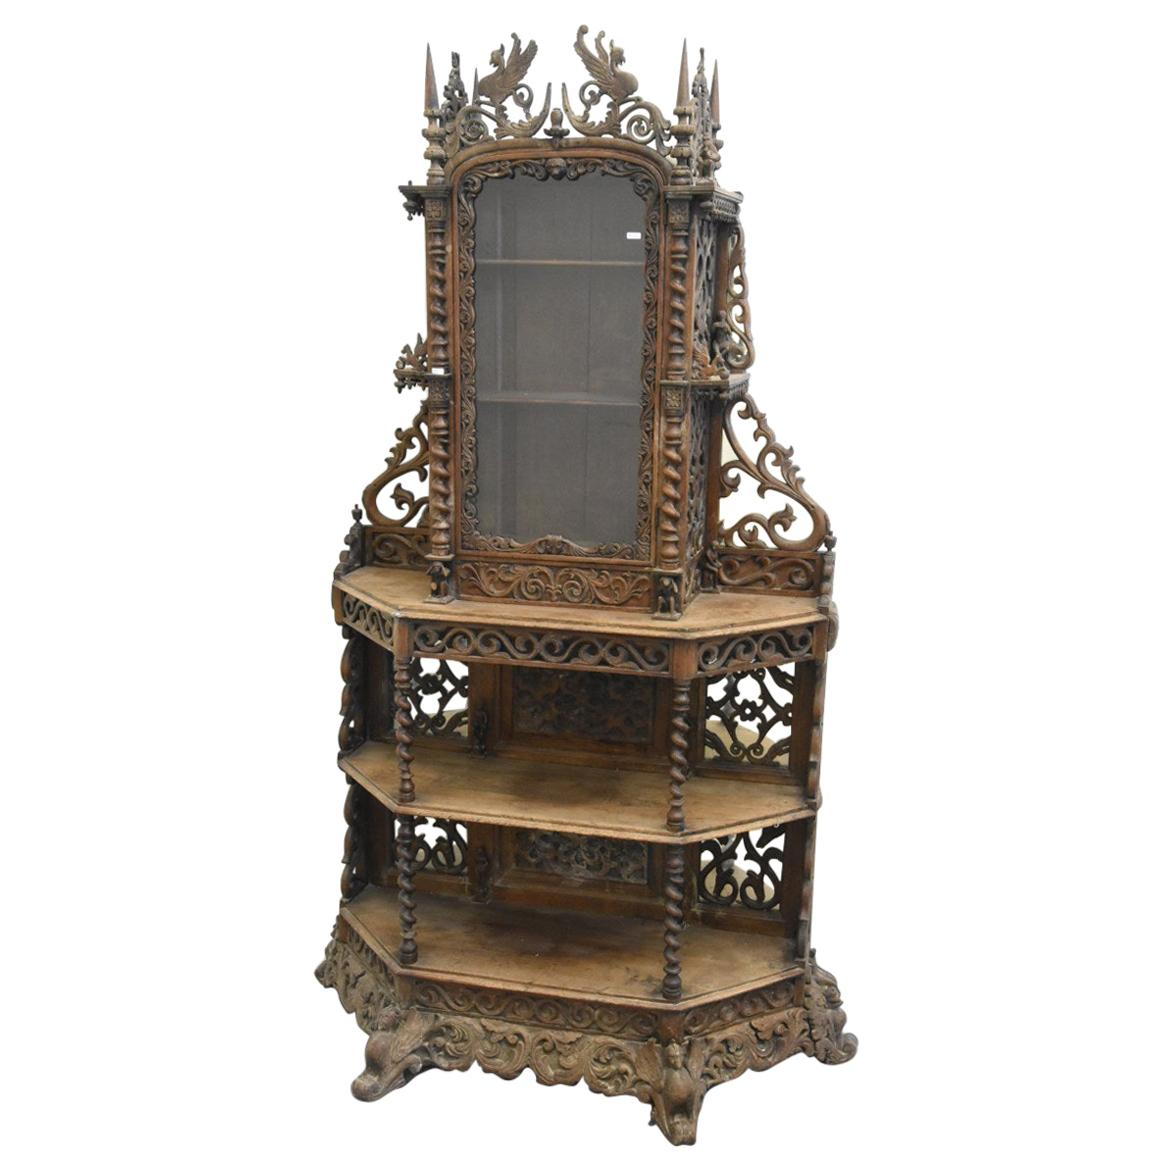 19th Carved Oak Cabinet with Characters and Animals Decor